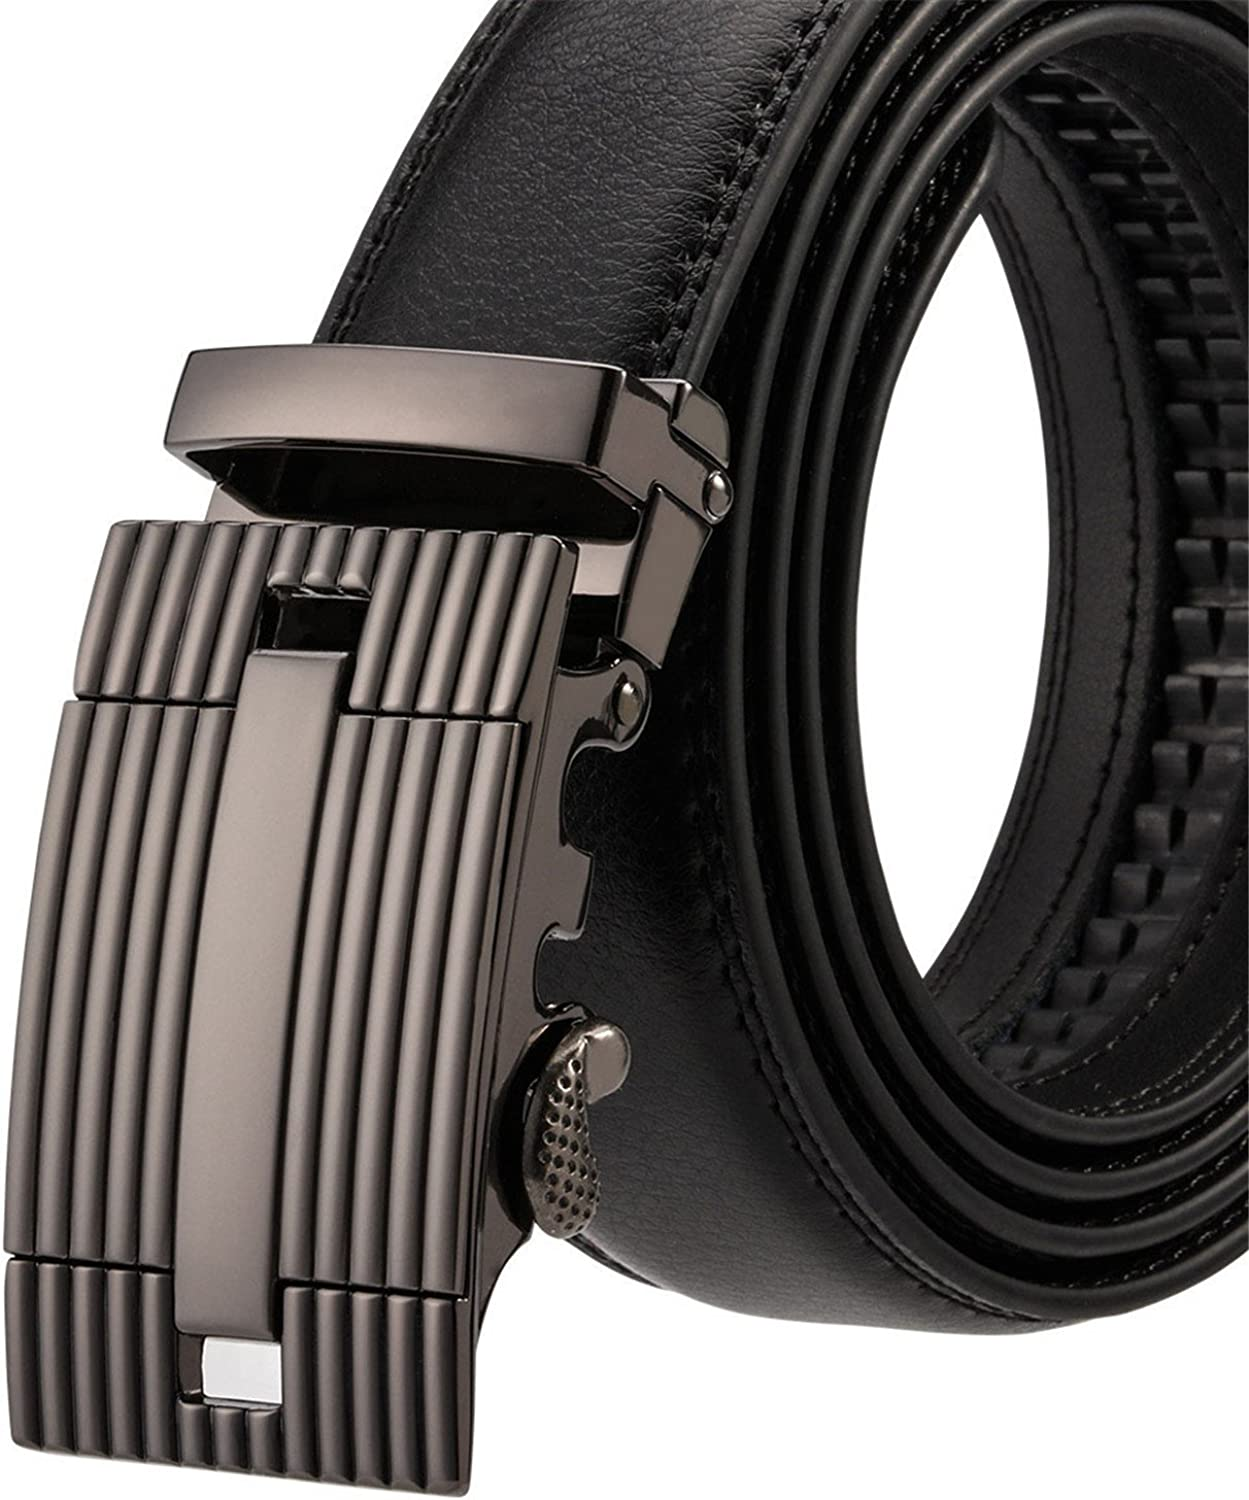 OnIn?Fashion?Leather Belt Men NEW Luxury Genuine Leather Designer Brand Waist Strap Automatic Buckle Male Belts for Men